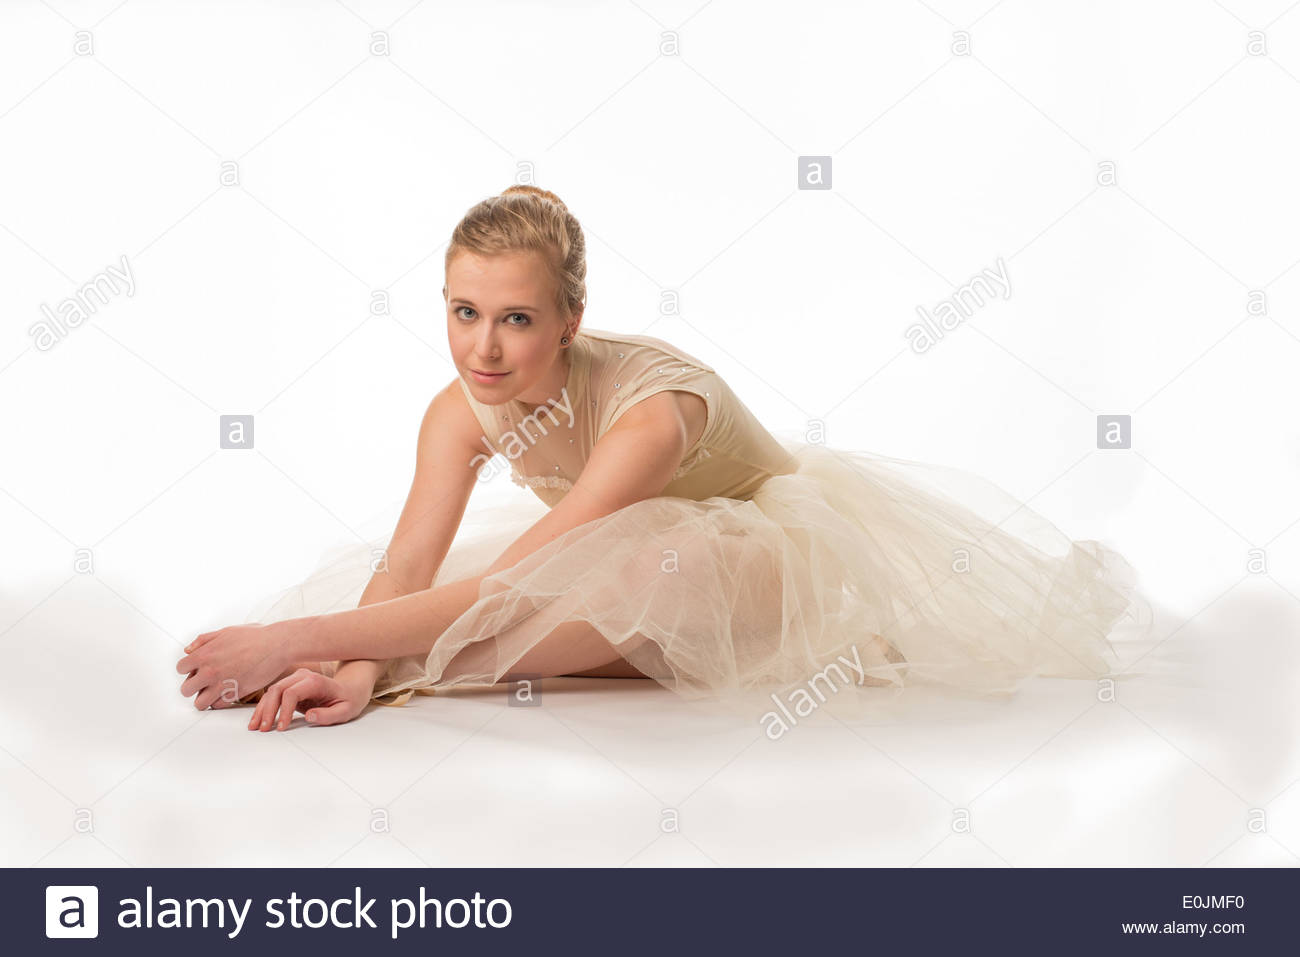 Teen girl in a white tutu on a white background sitting on the floor stretching. Stock Photo